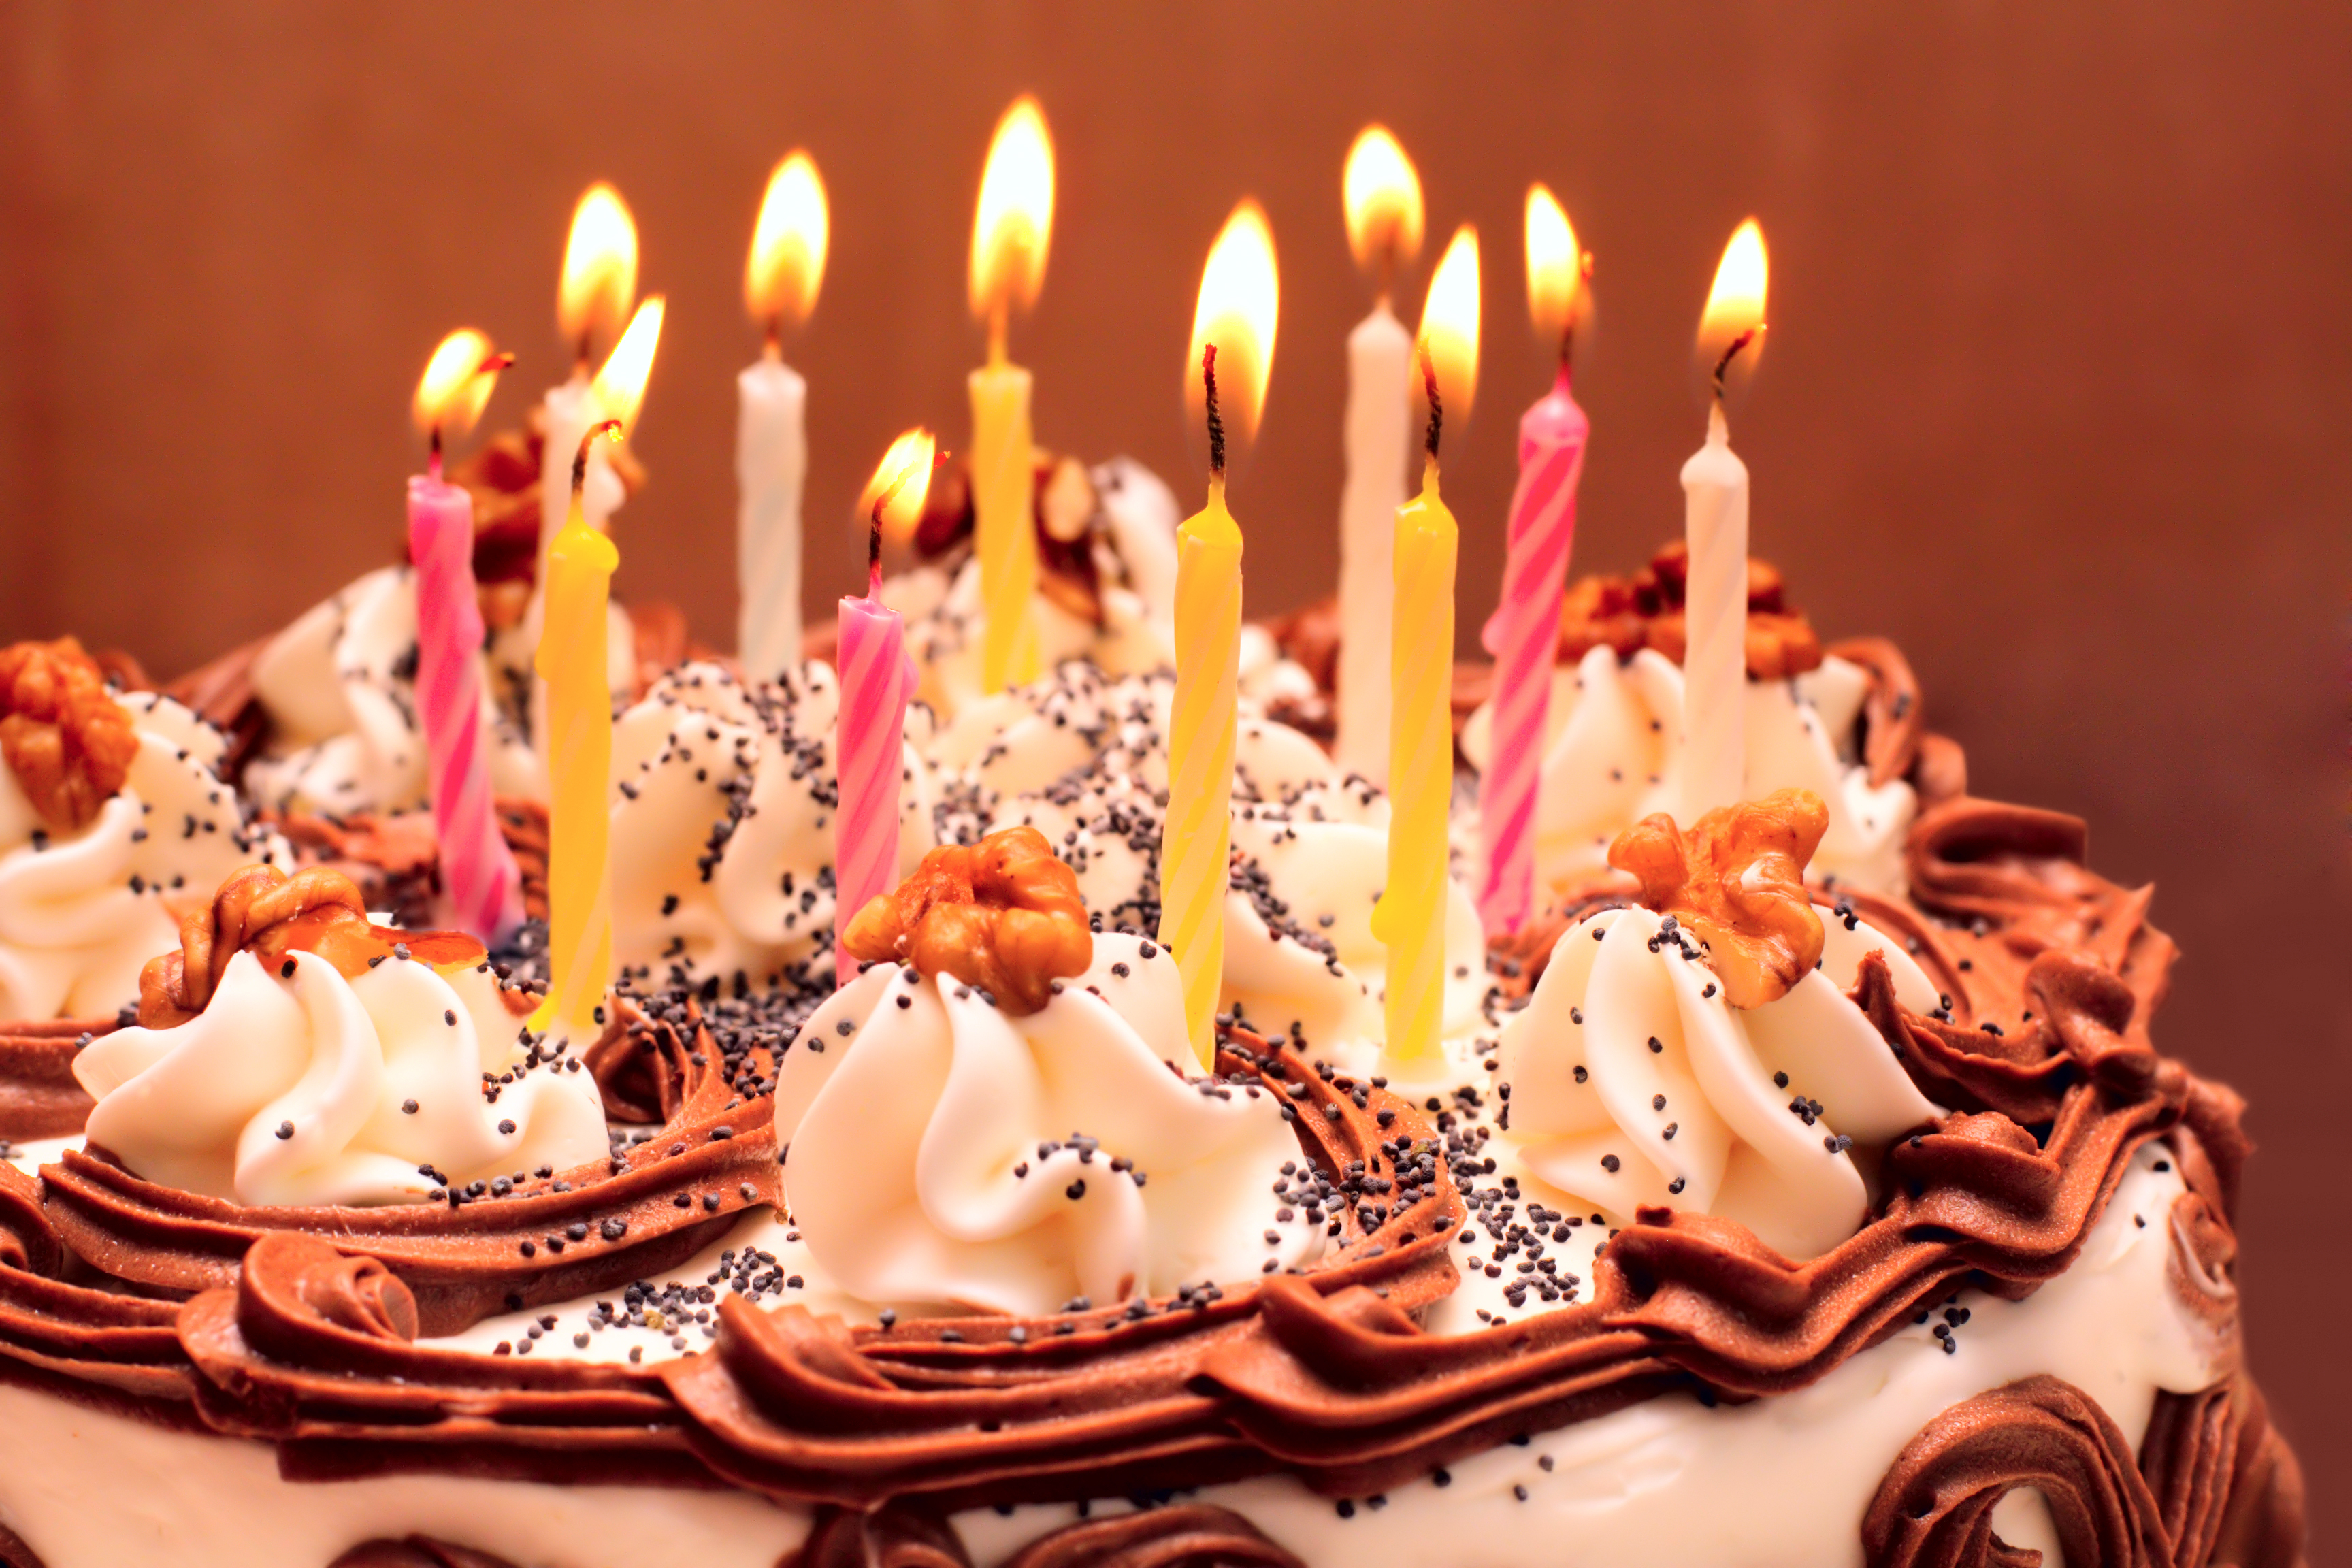 Birthday Cakes Images How The Practice Of Putting Candles On Cakes For Birthdays Started